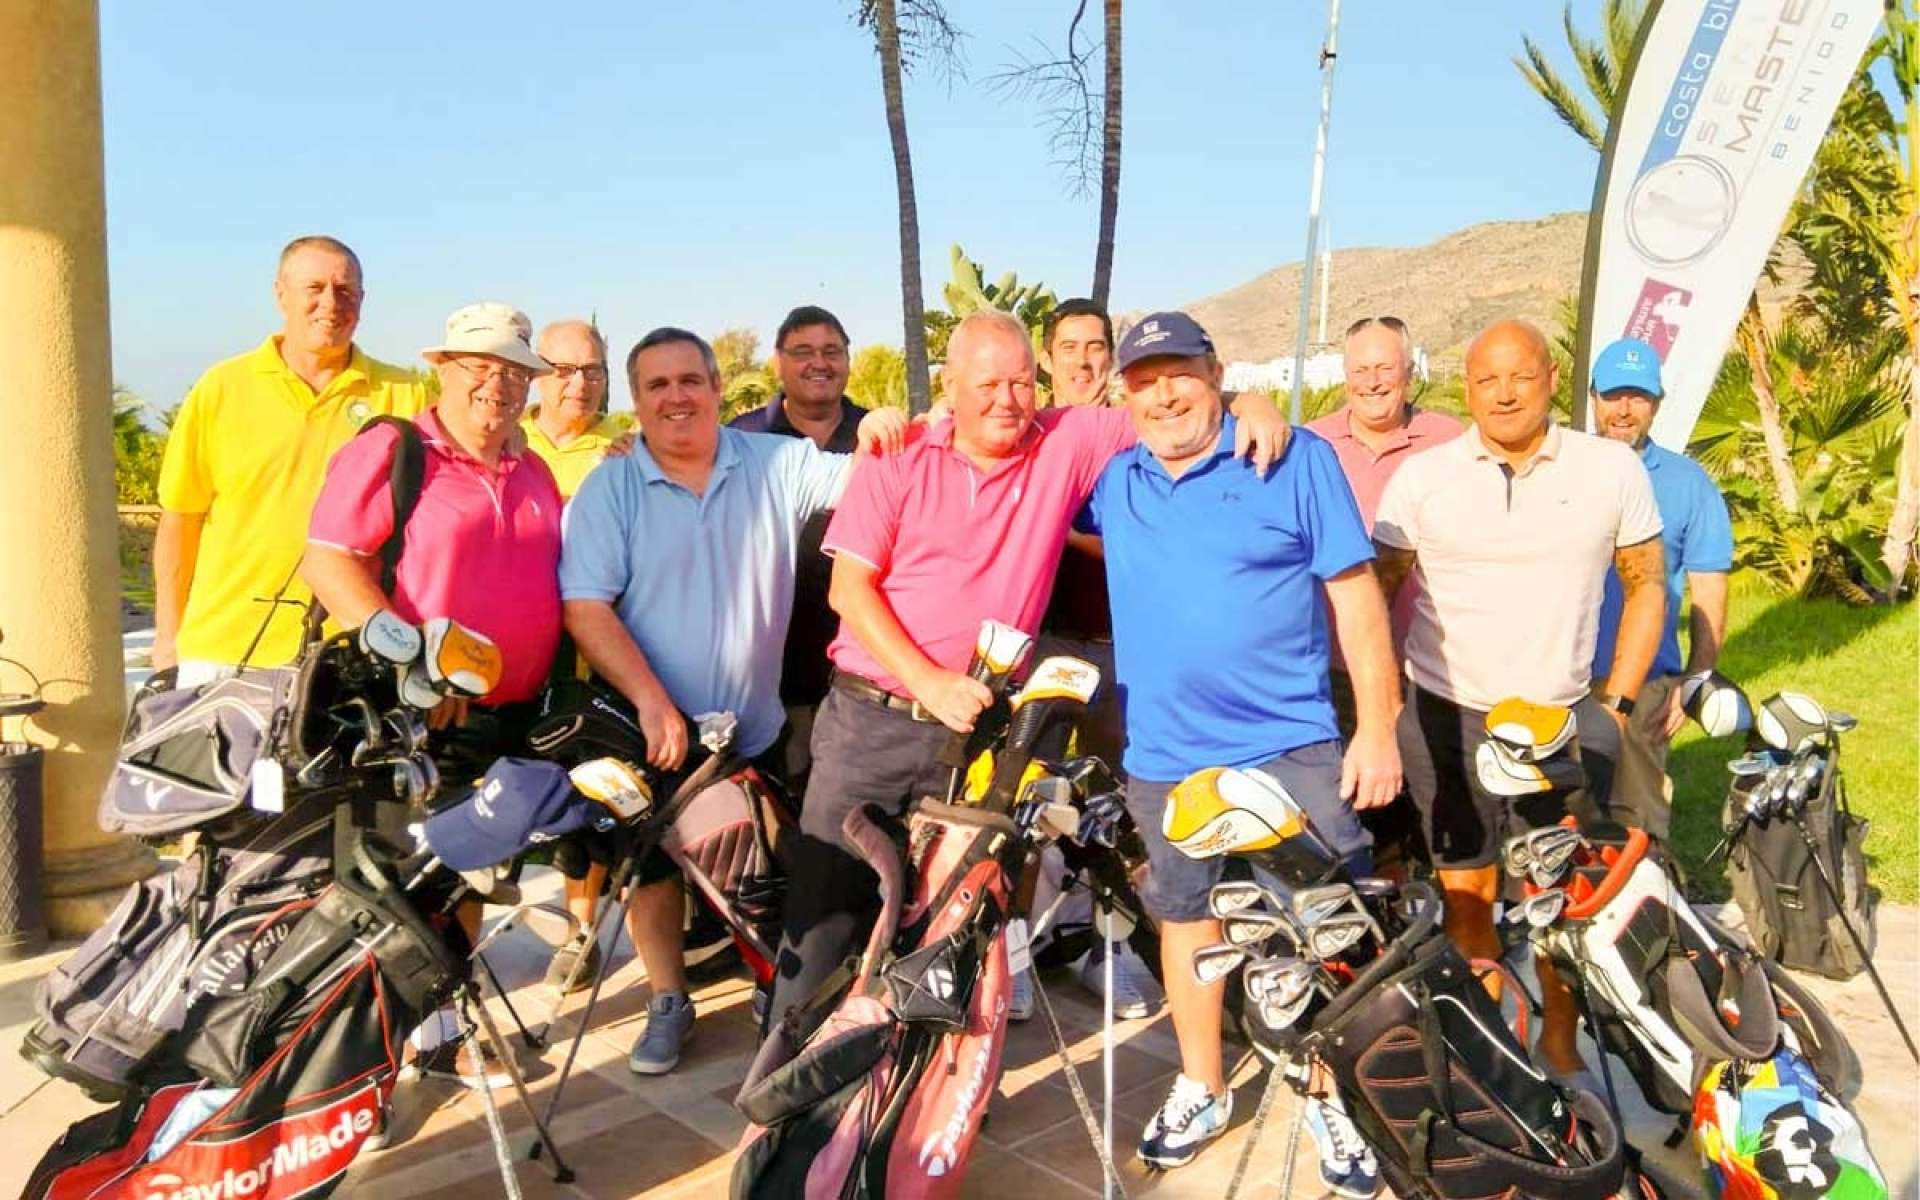 Golf-club-hire-groups-societies-murcia-spain